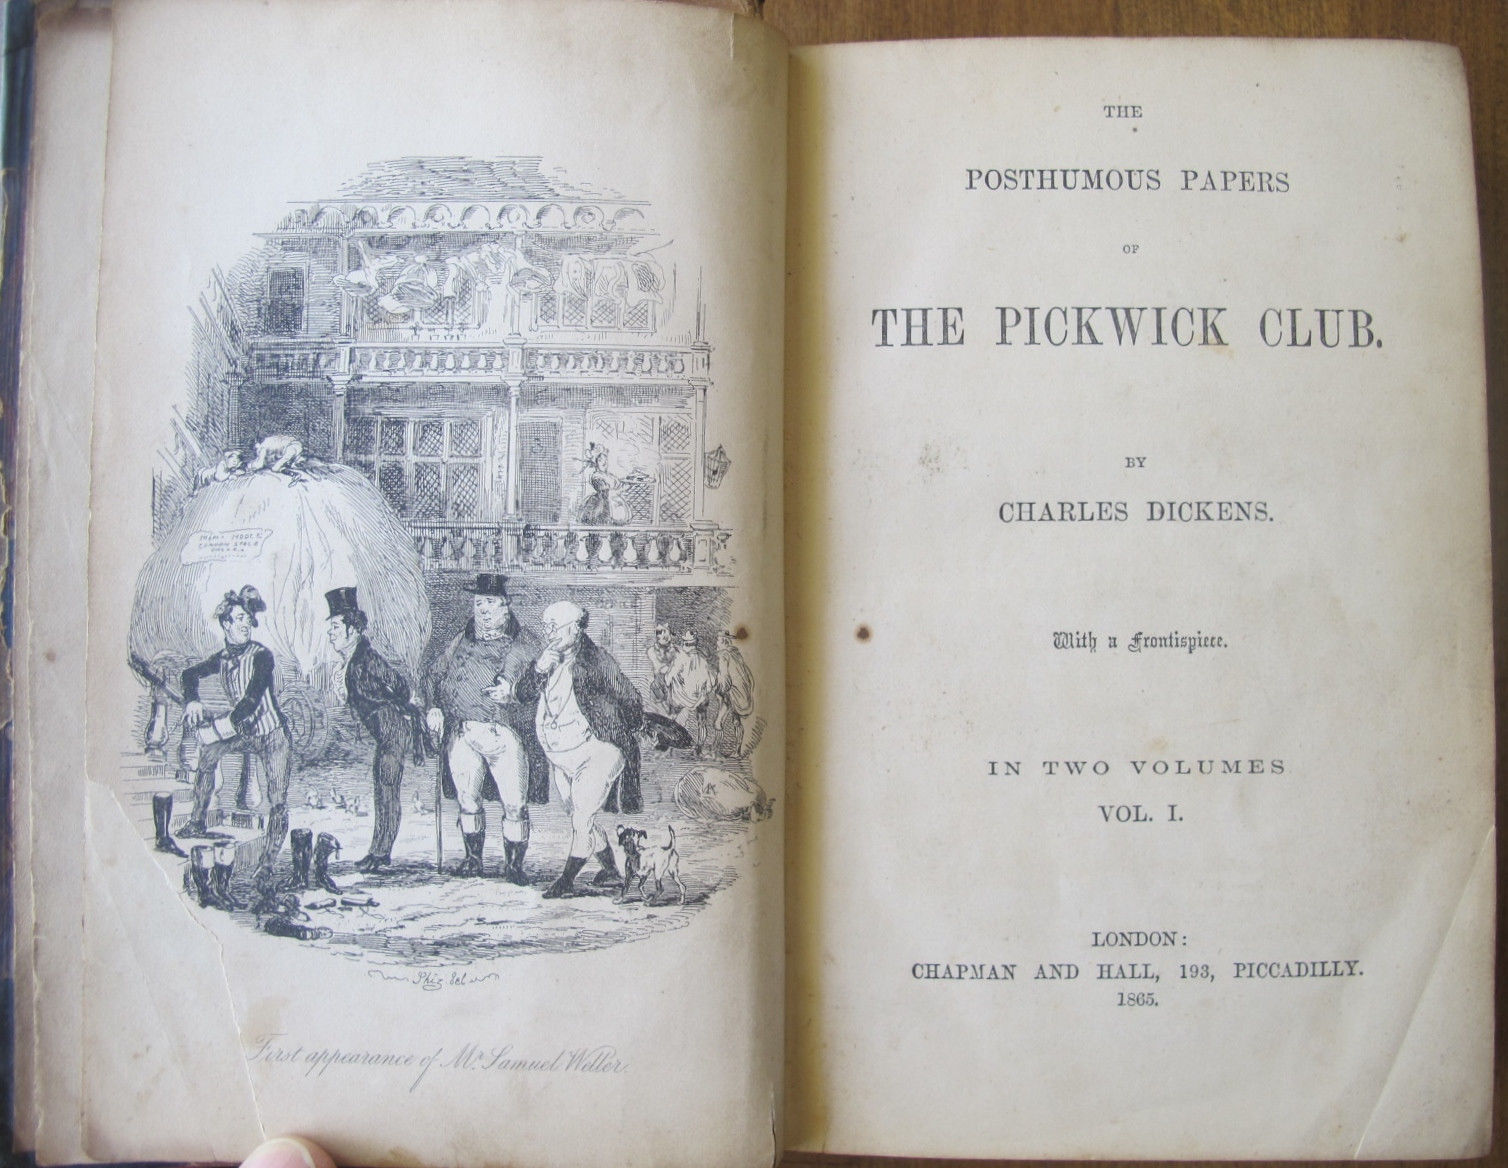 research papers charles dickens His portrait appeared on the reverse of the note accompanied by a scene from the pickwick papers the charles dickens school is a high school in broadstairs, kent.